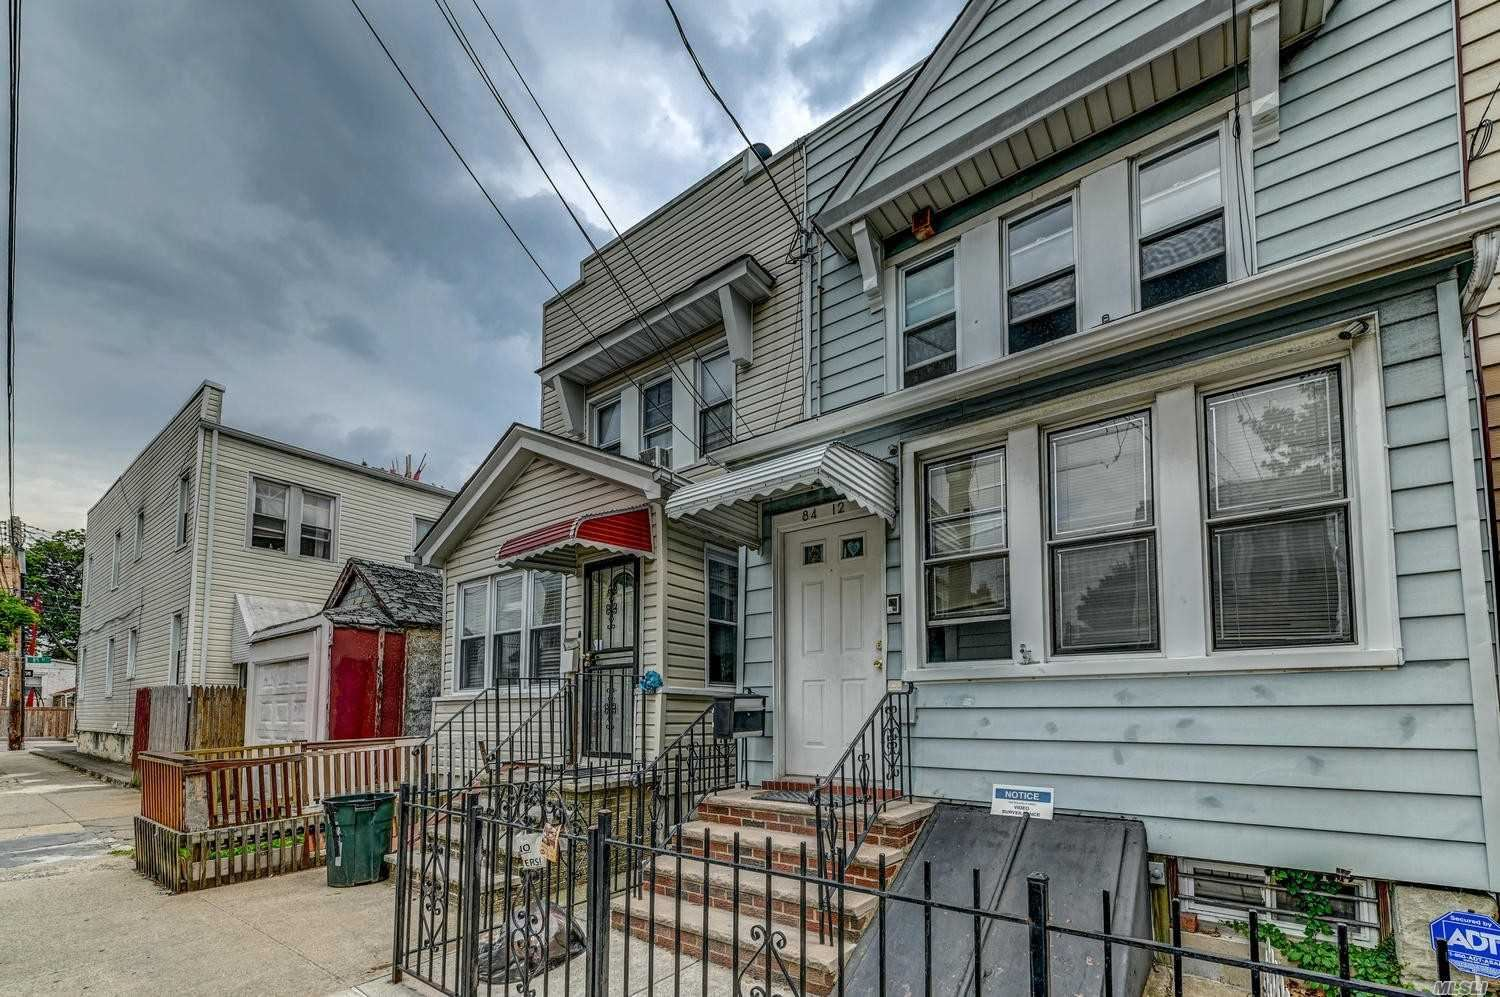 84-12 89th Ave, Woodhaven, NY 11421 - MLS#: 3230899